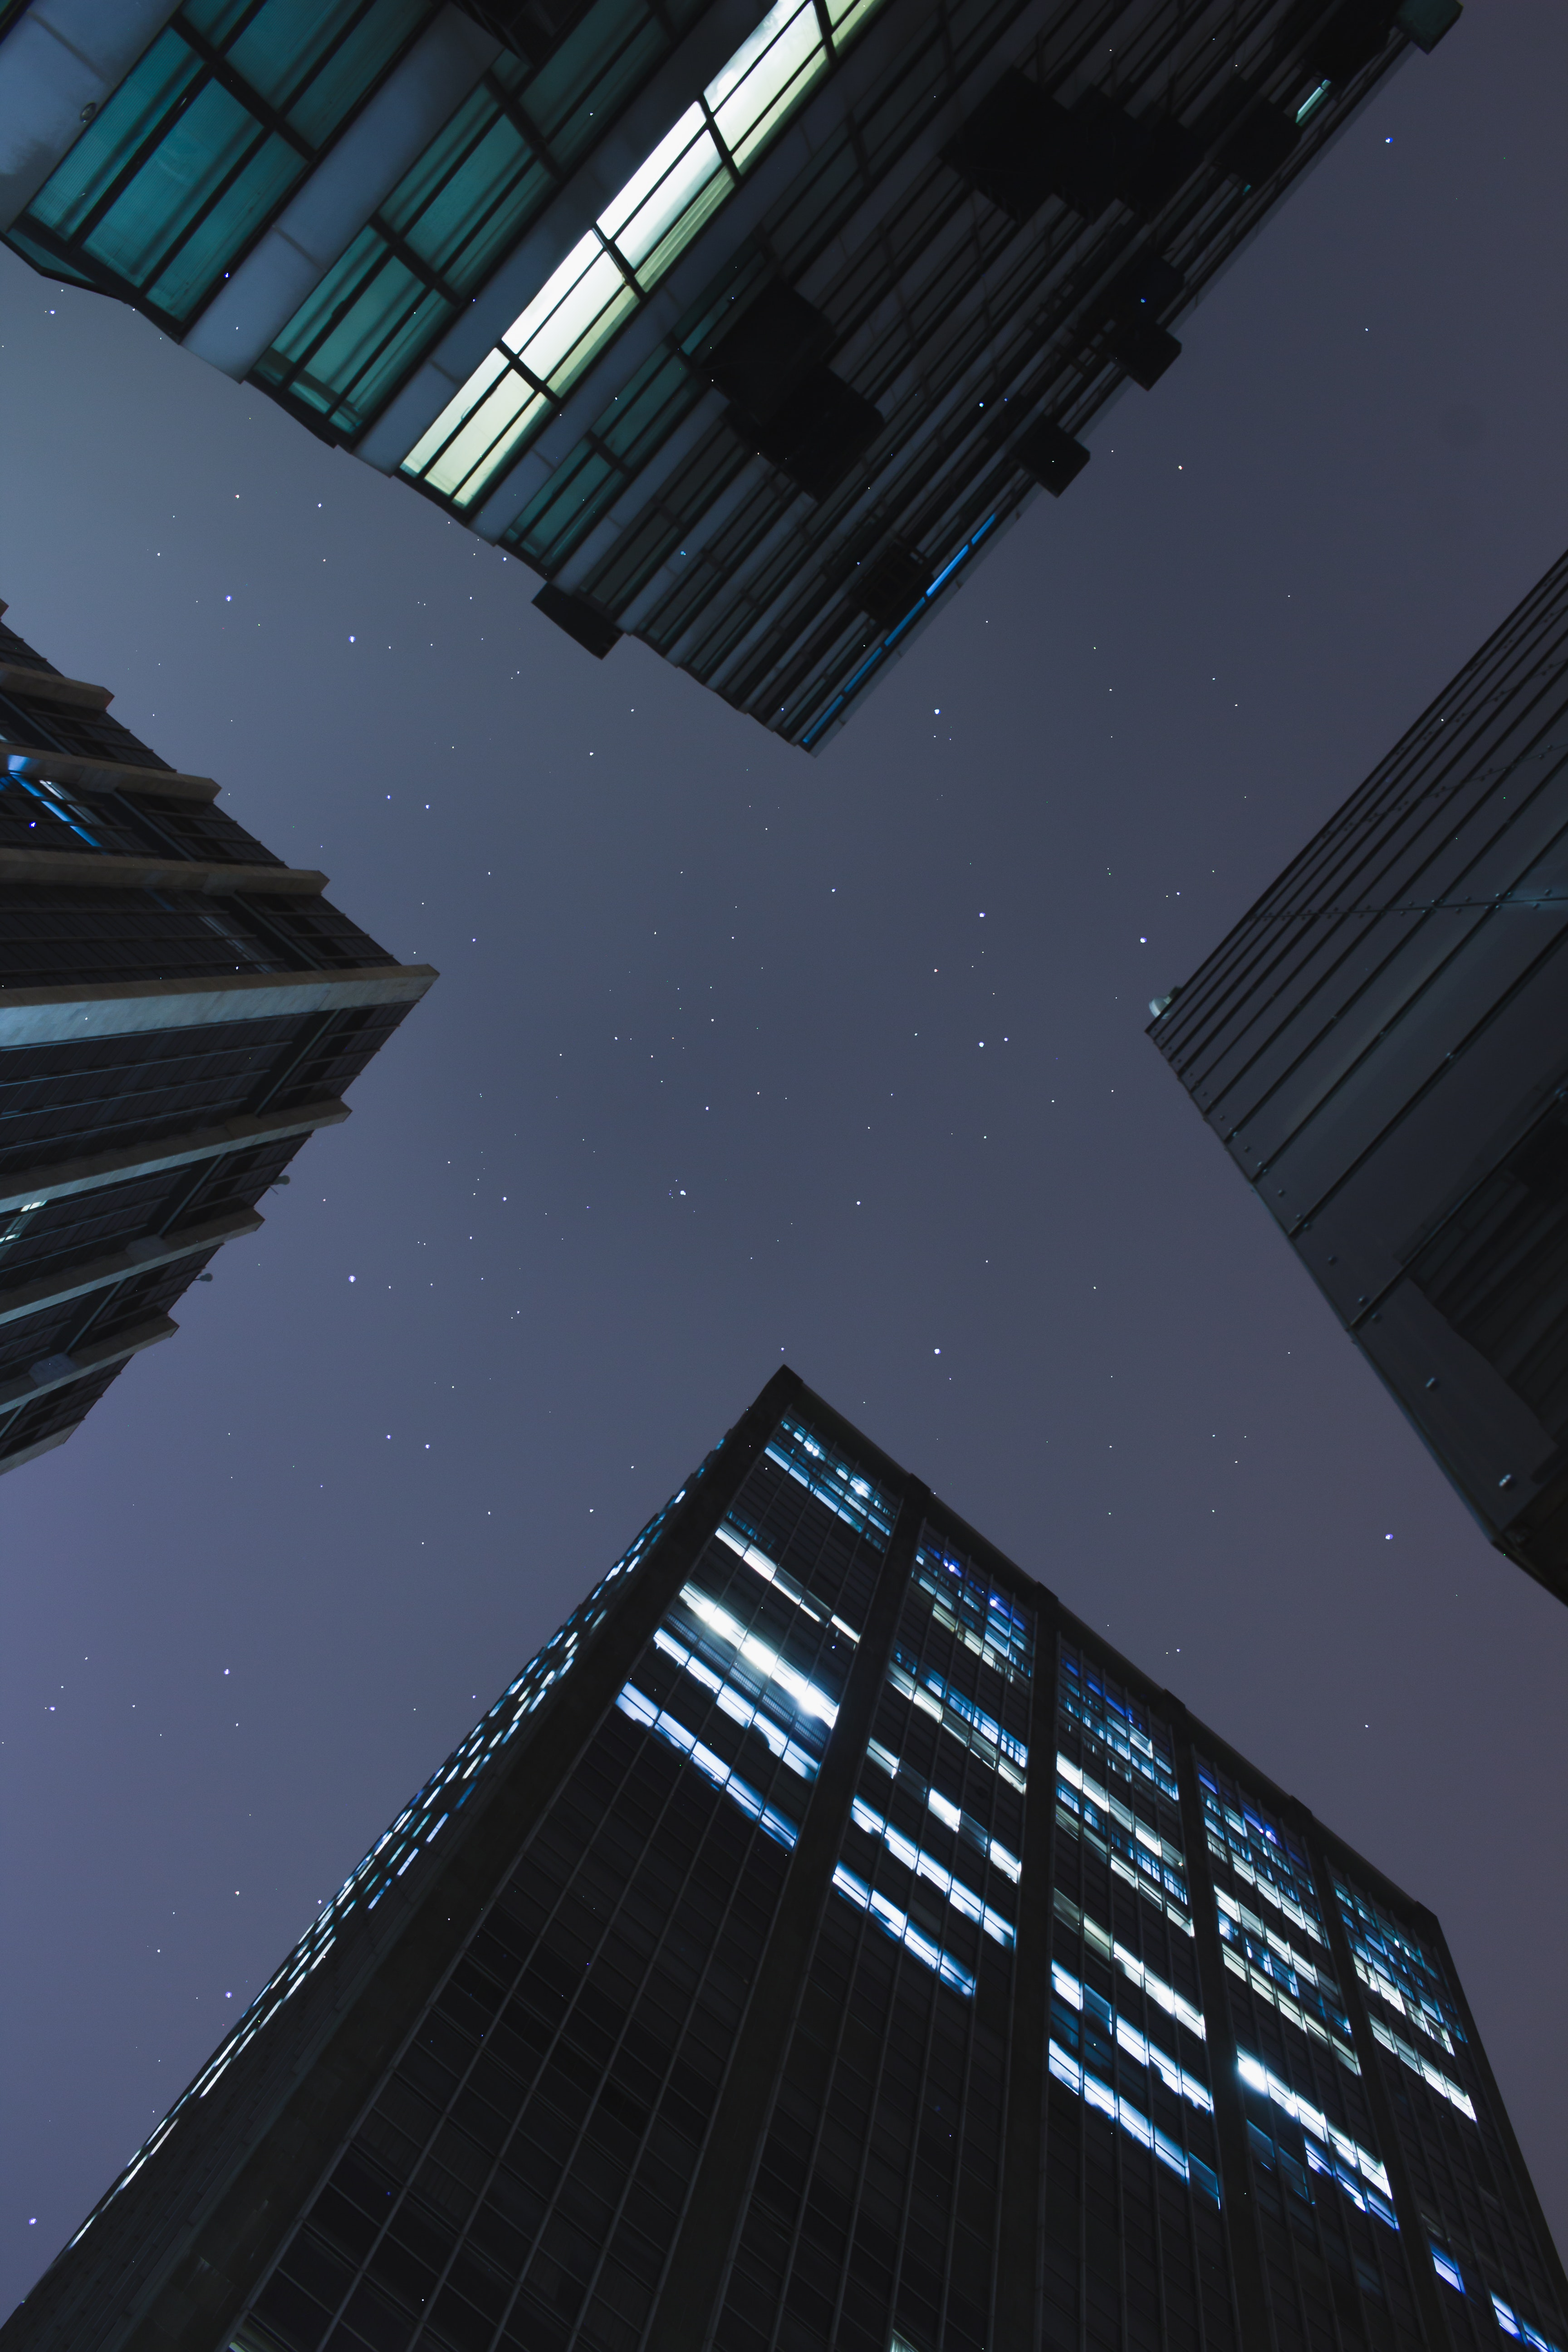 Low-angle photography of curtain wall buildings during the night